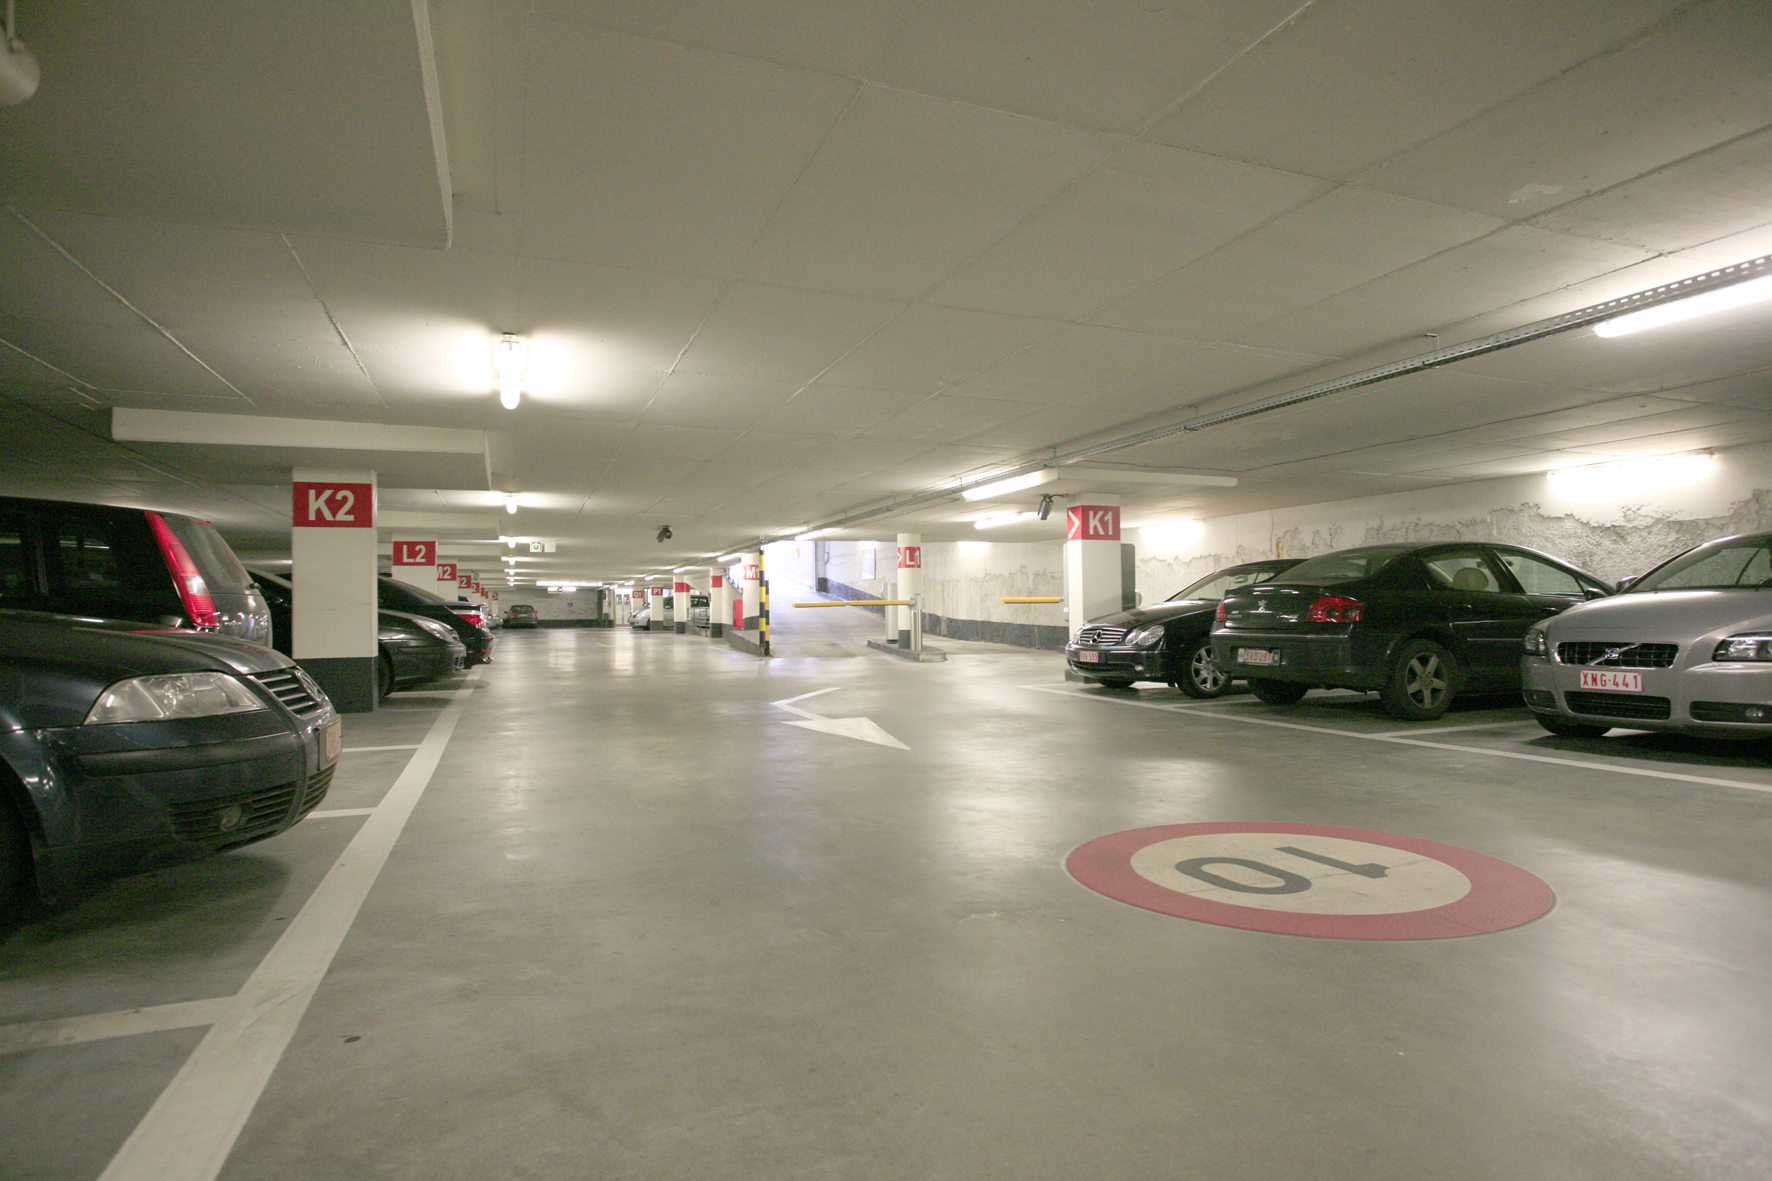 10830 Gent Parking Reep